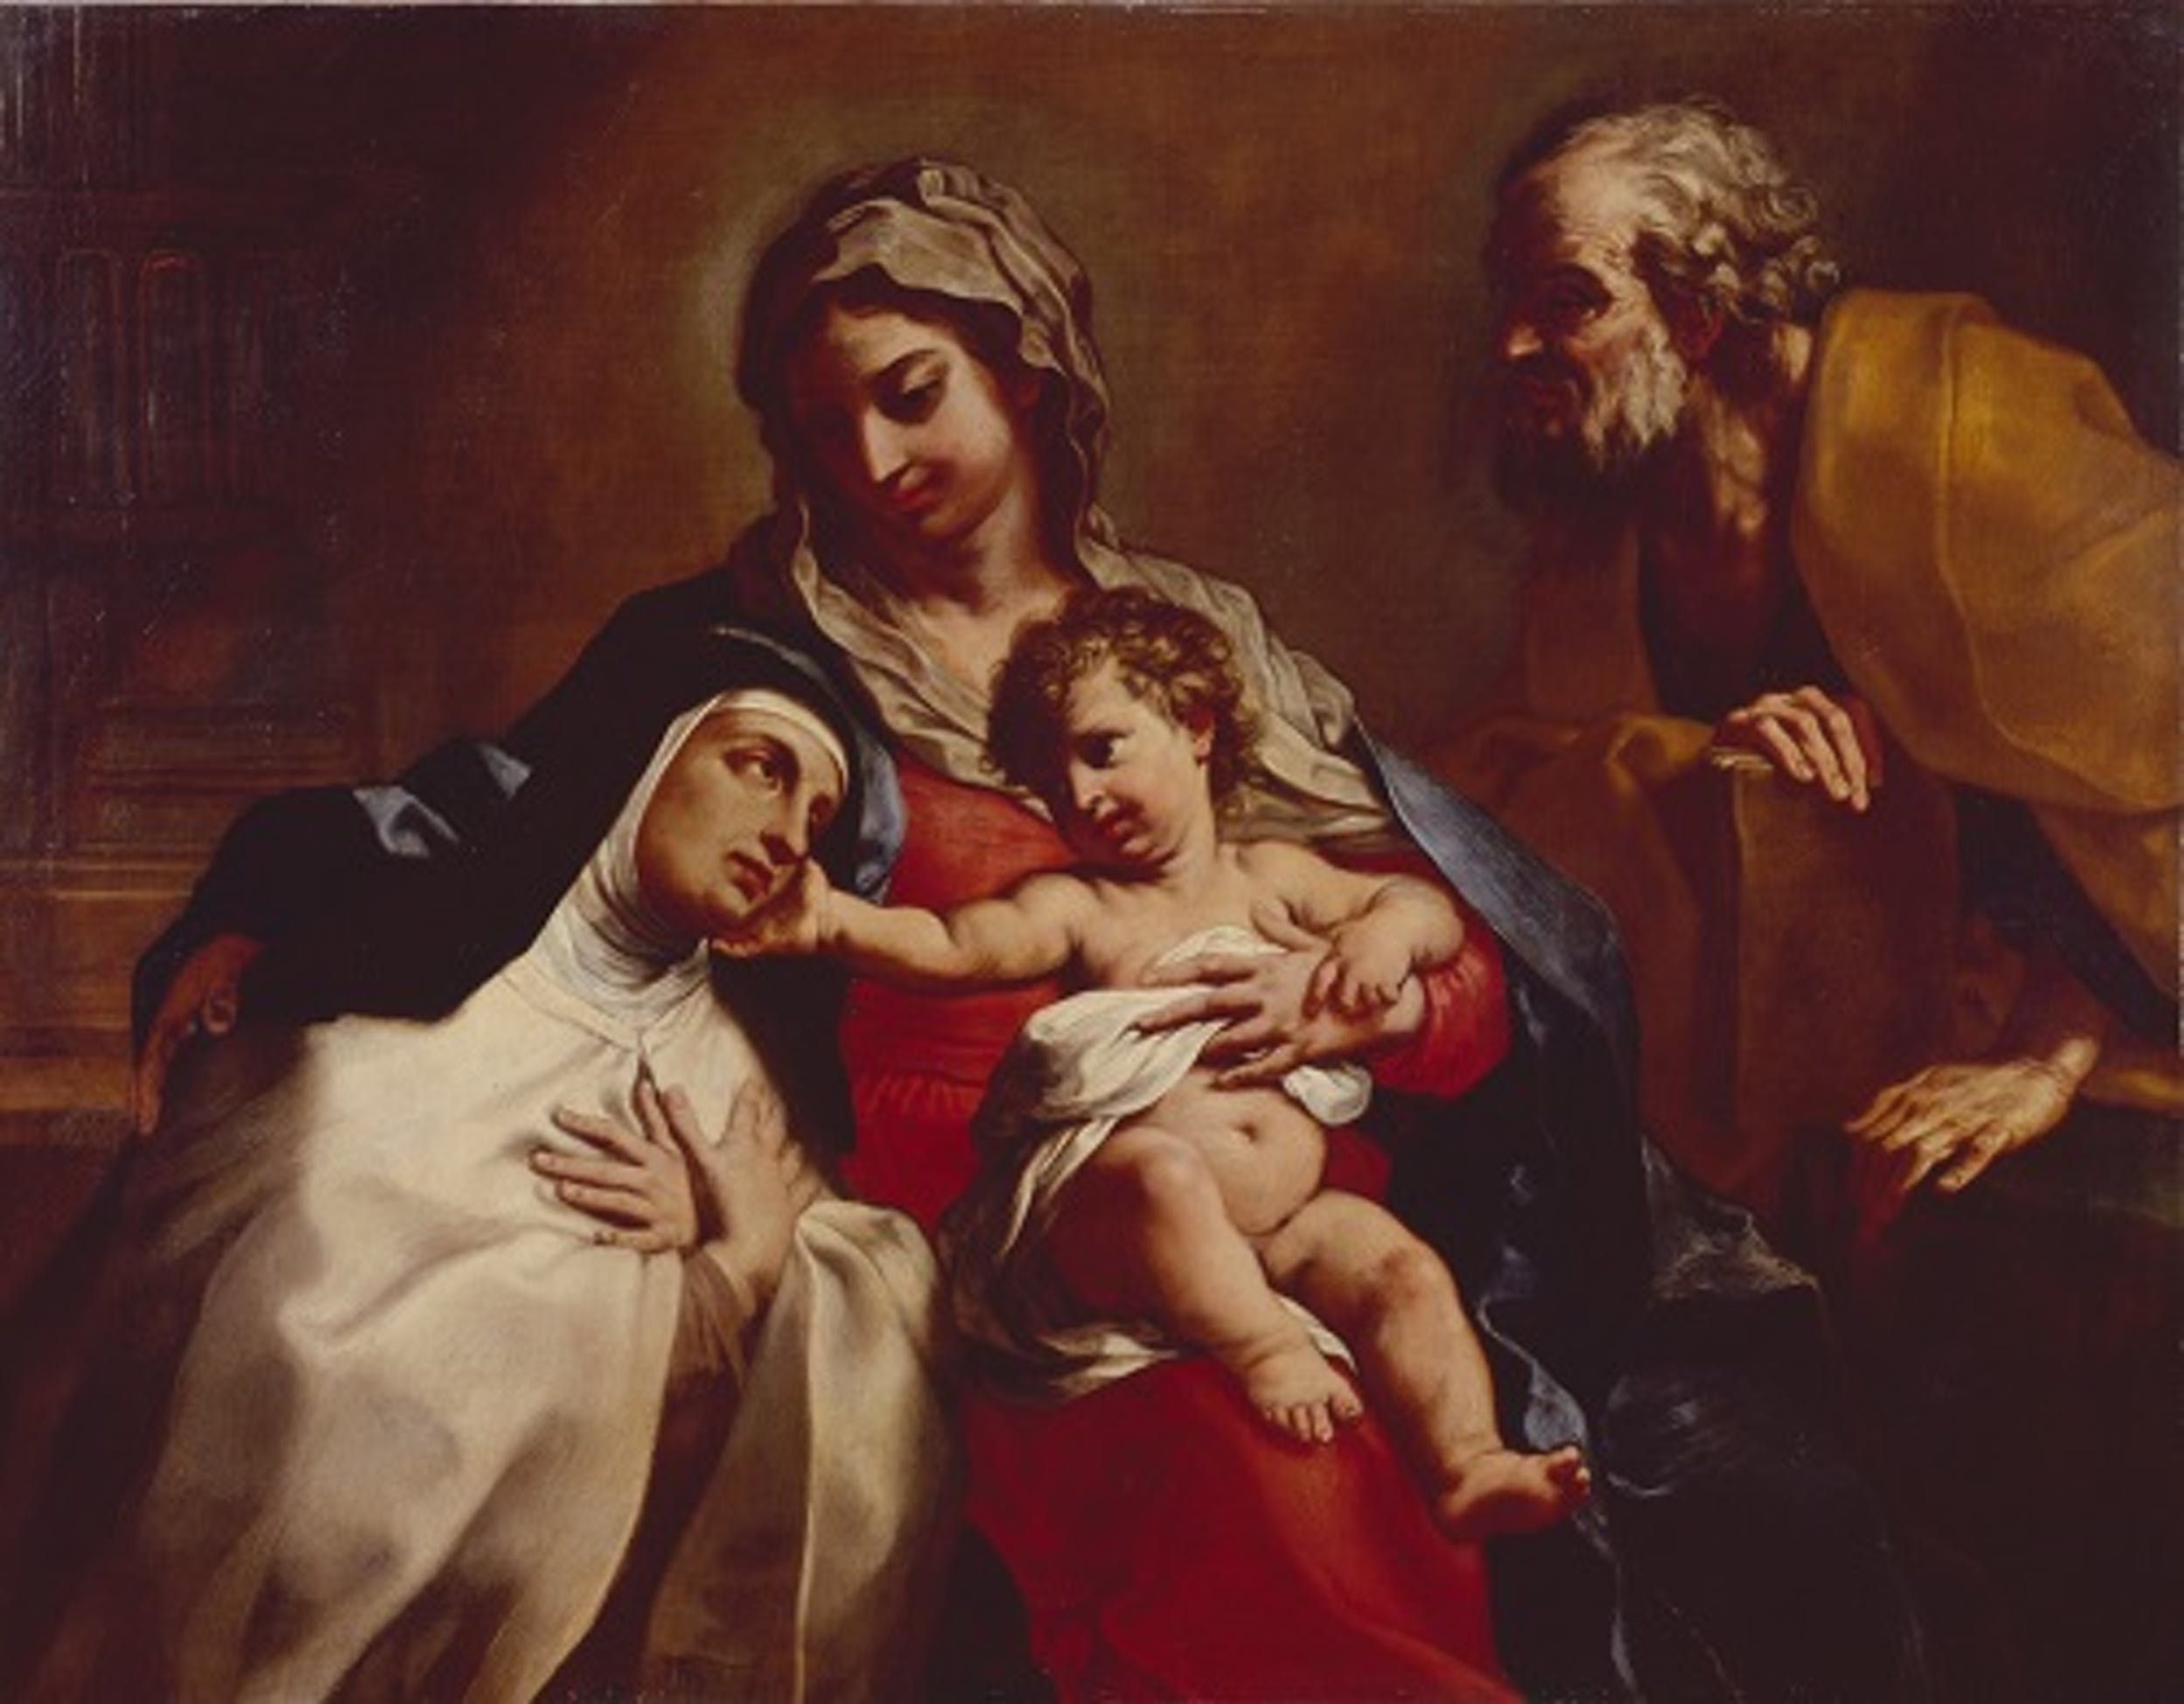 Fig. 1 Elisabetta Sirani, Sacra Famiglia con Santa Teresa, Modena, collezione privata - Holy Family with St Theresa, Modena, private collection L. Zanasi.